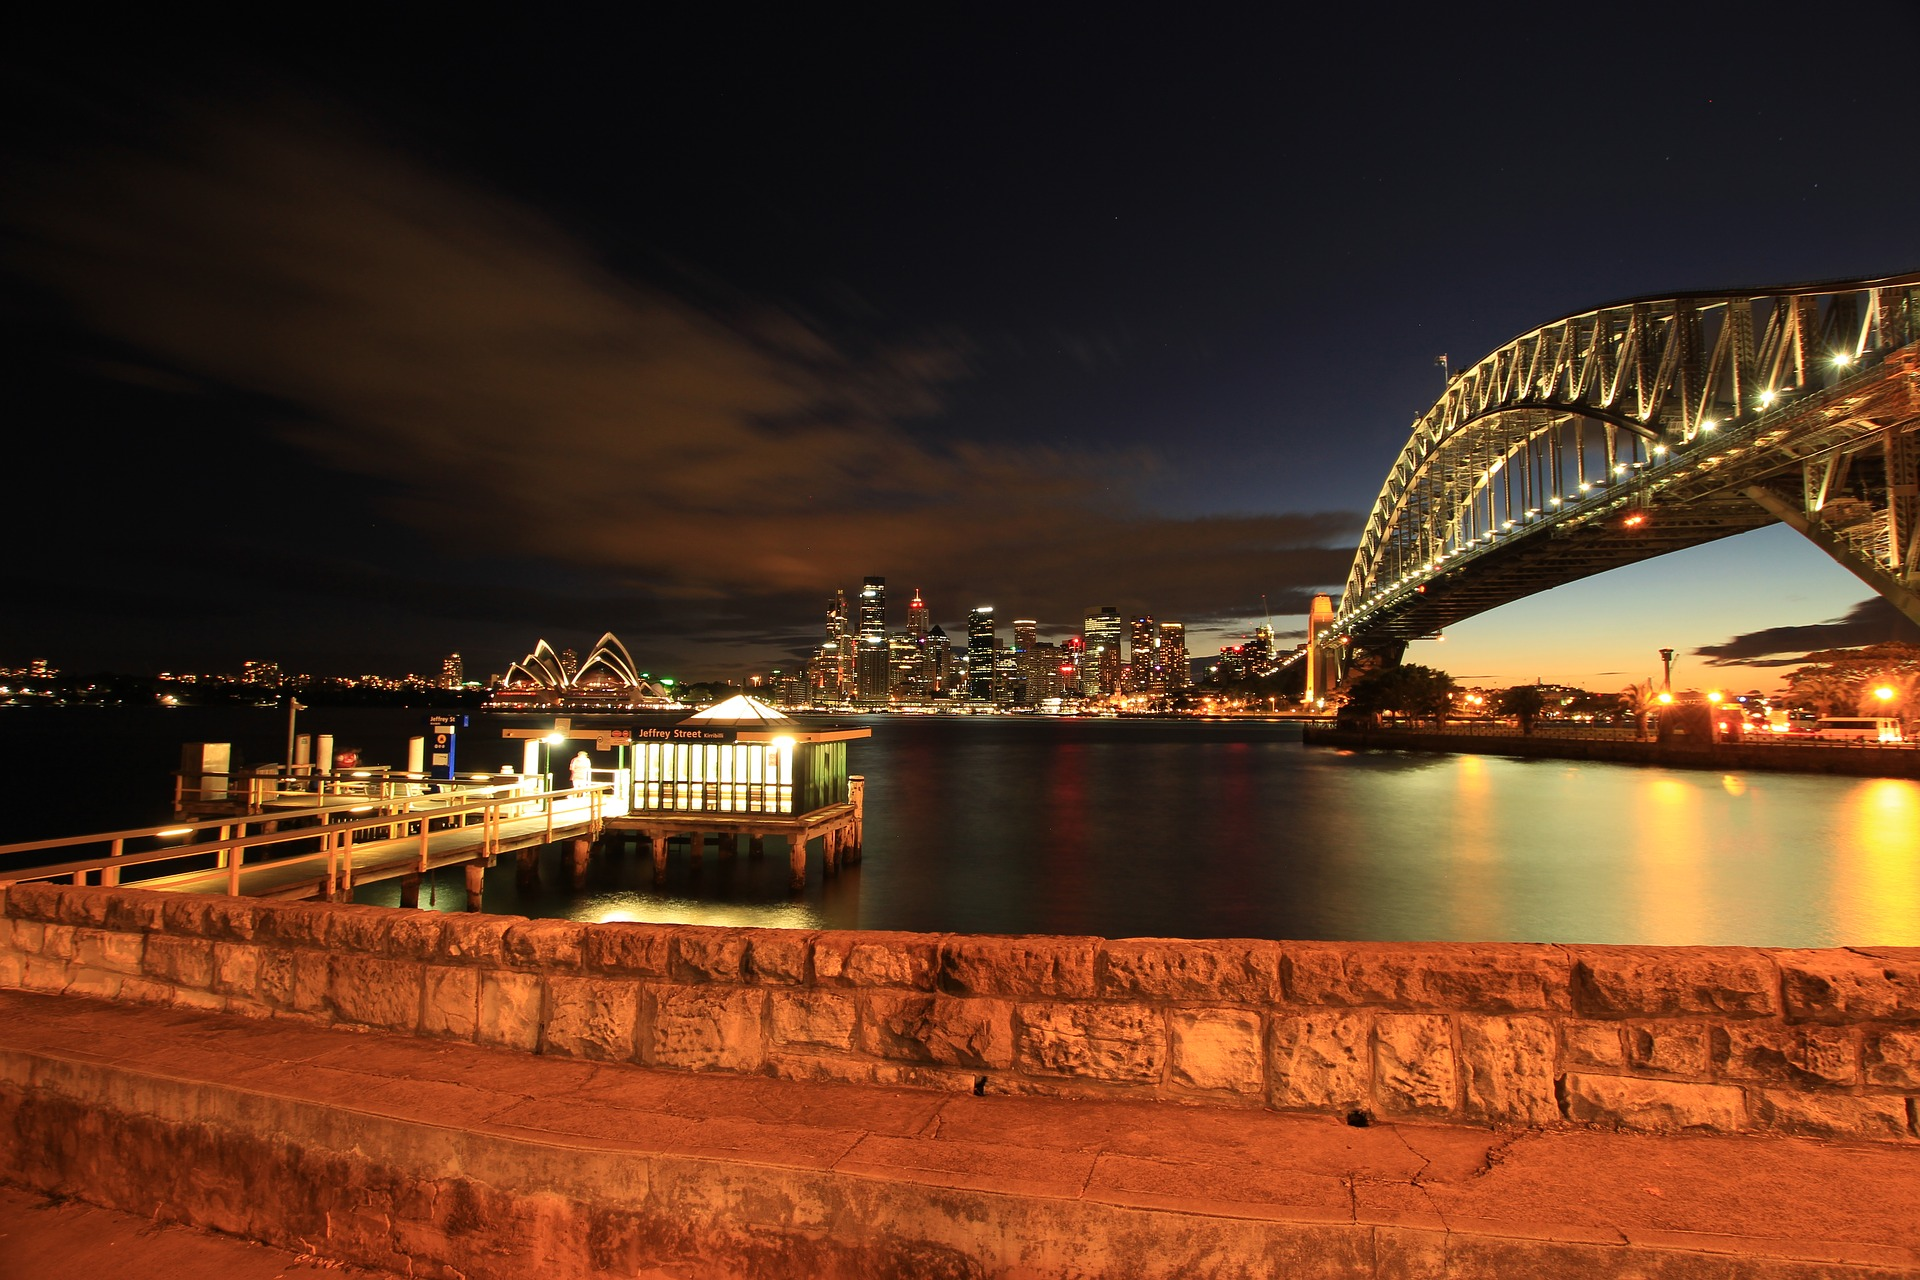 Sydney Harbour Bridge, across Sydney Harbour, Sydney, Australia